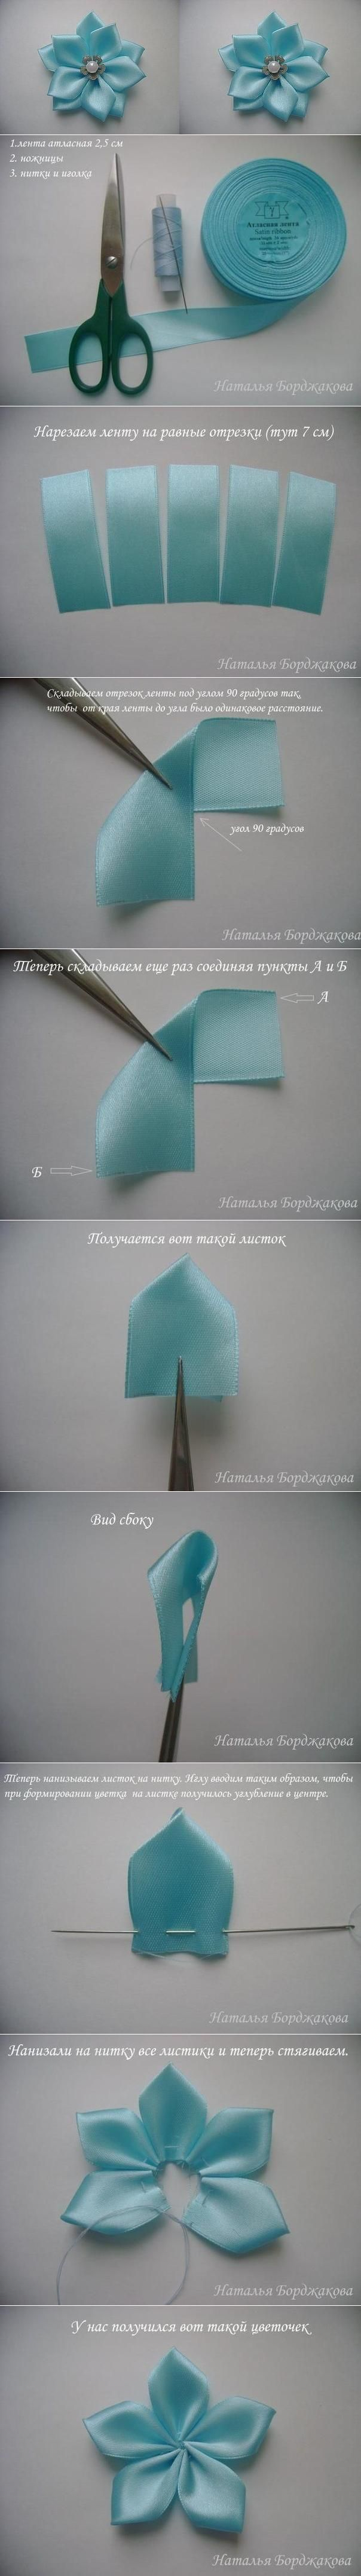 DIY Pointed Petals Ribbon Flower